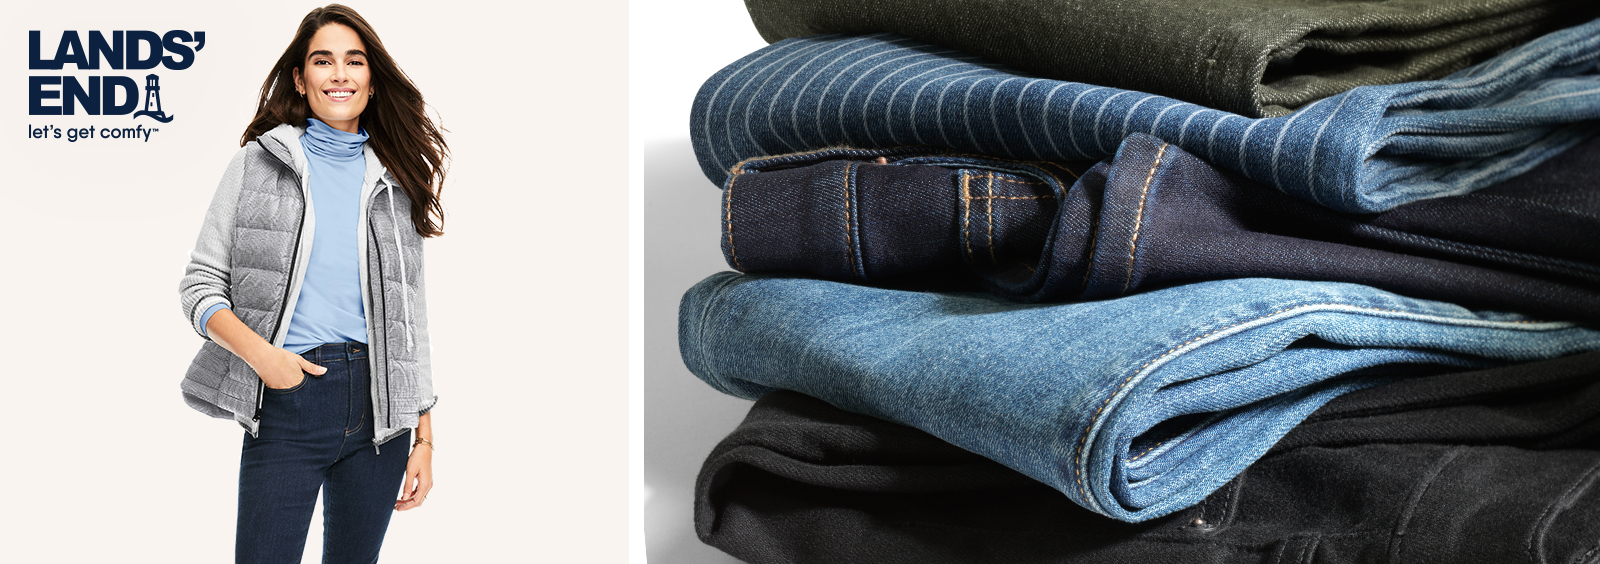 Jean Styles That Work for Various Body Shapes and Sizes